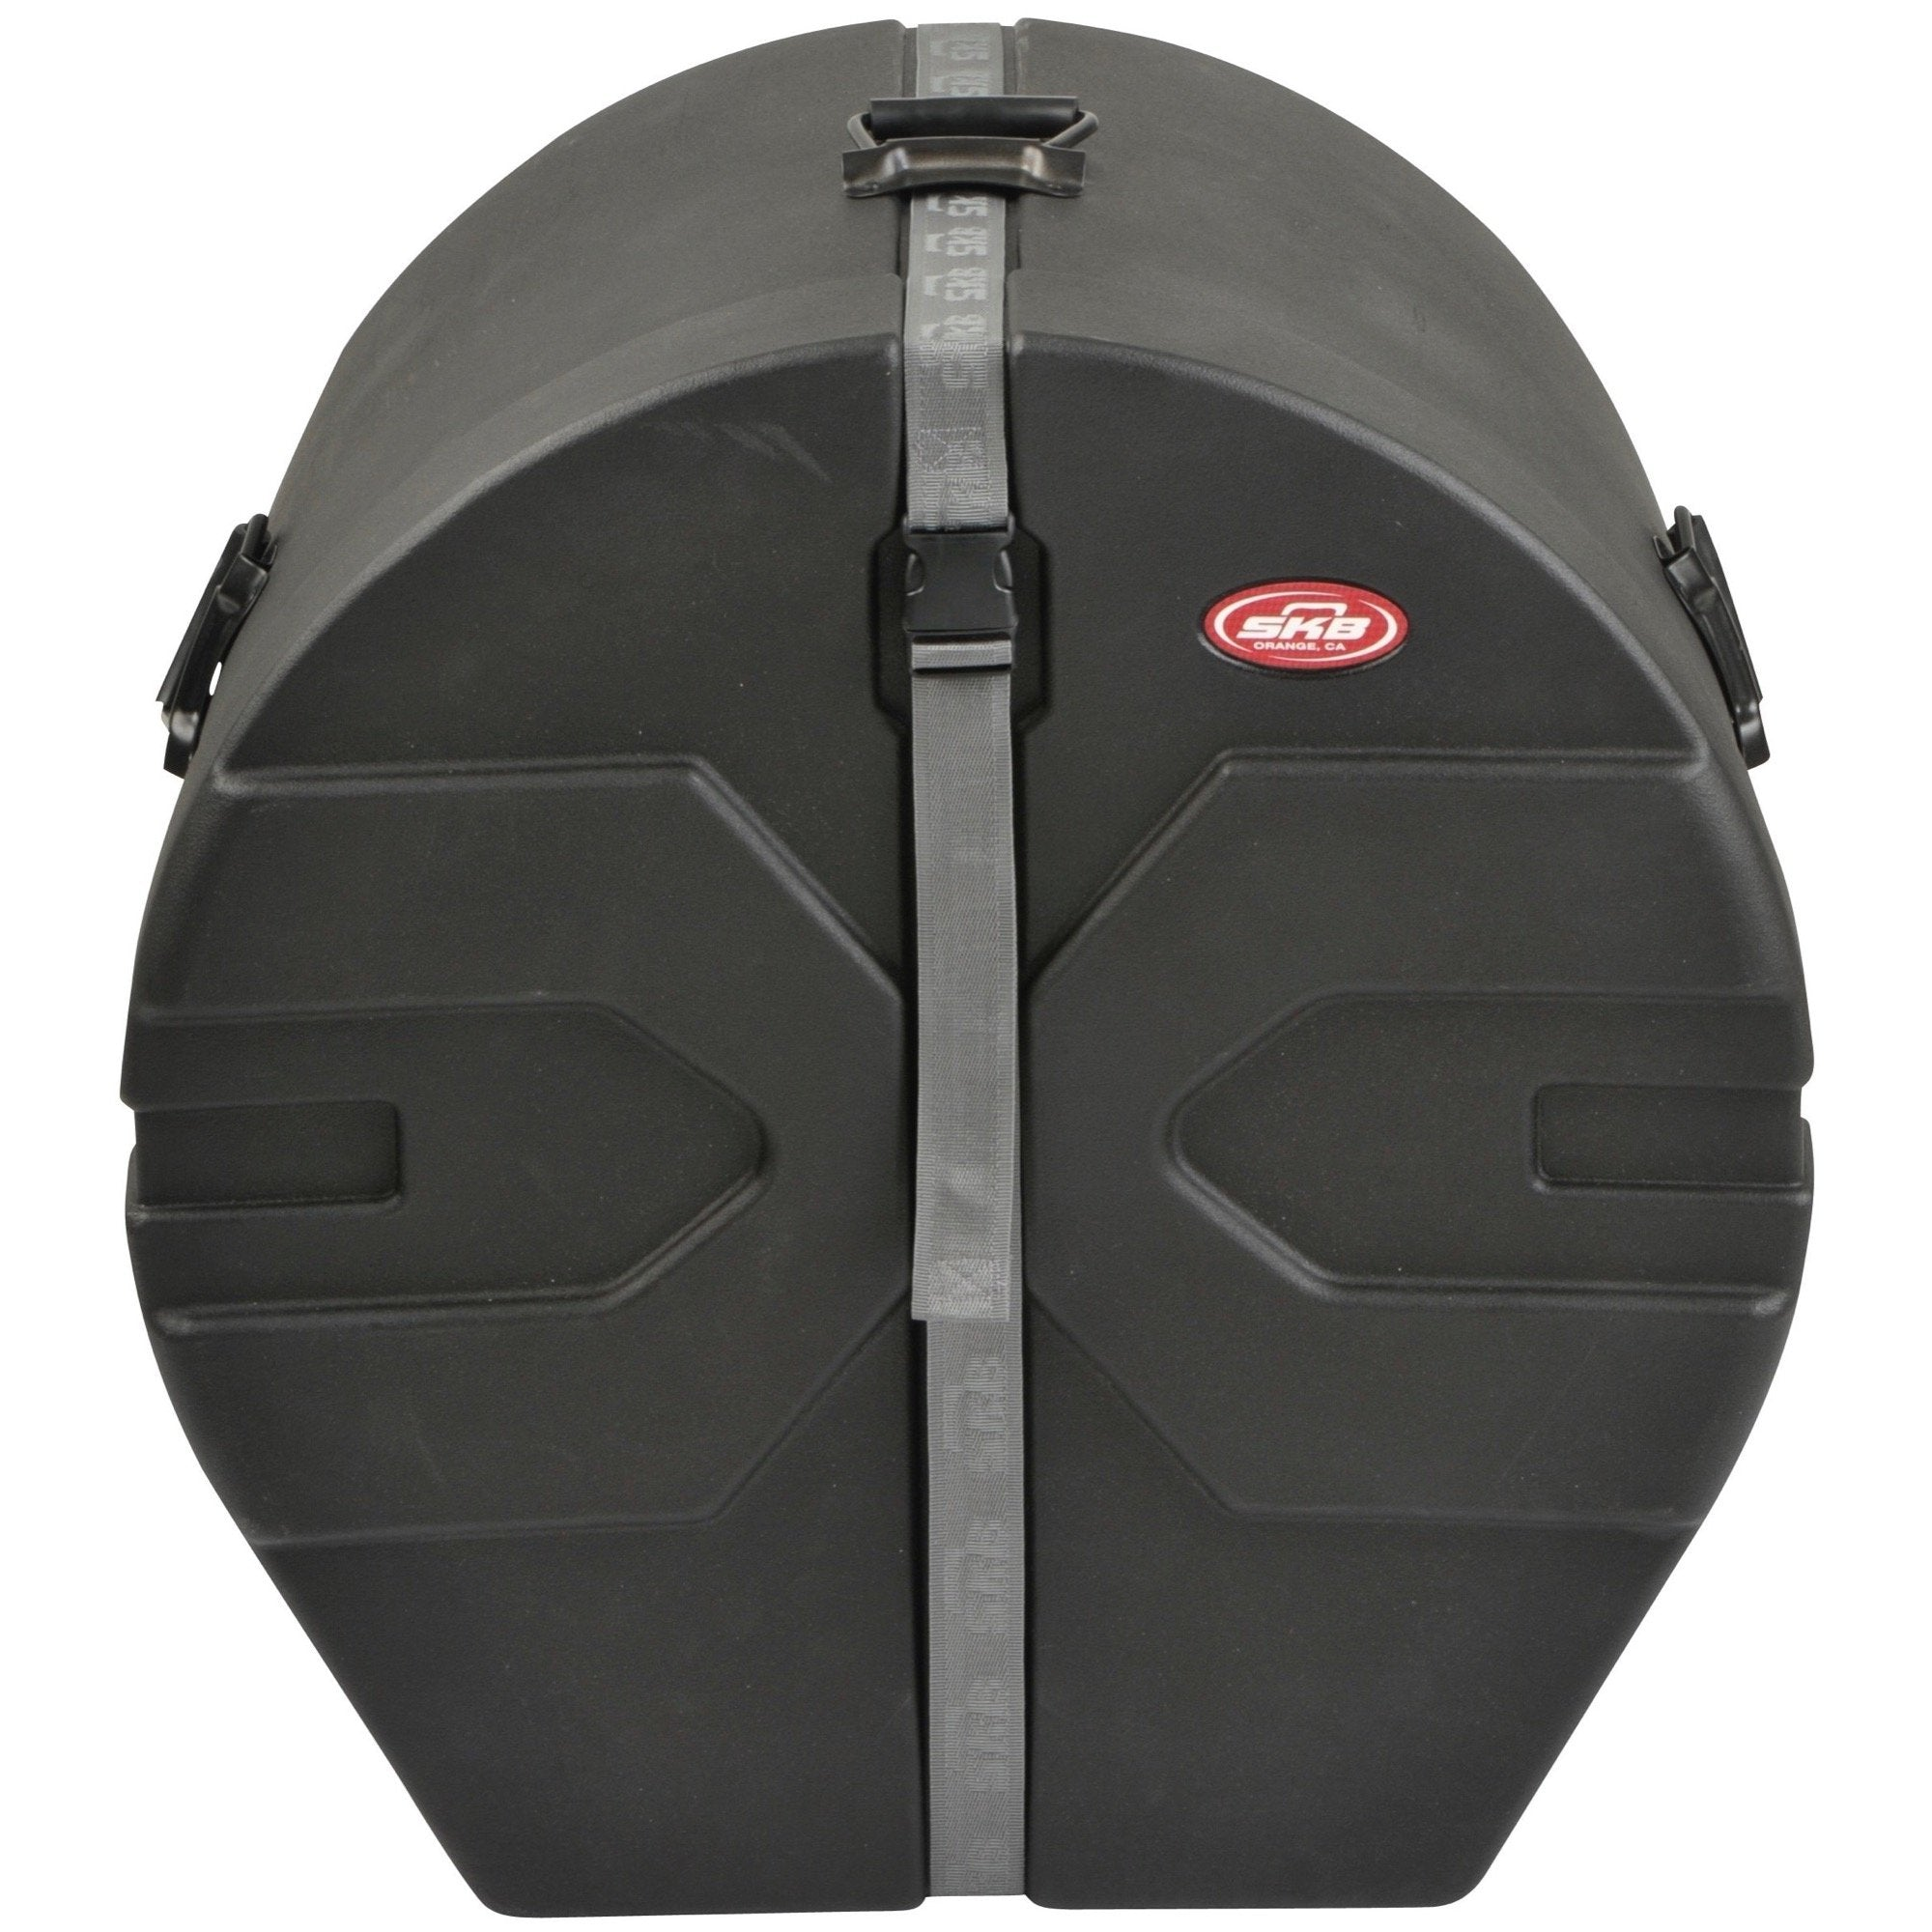 SKB Roto Molded Drum Case, SKB-D1822, 18x22 Inch